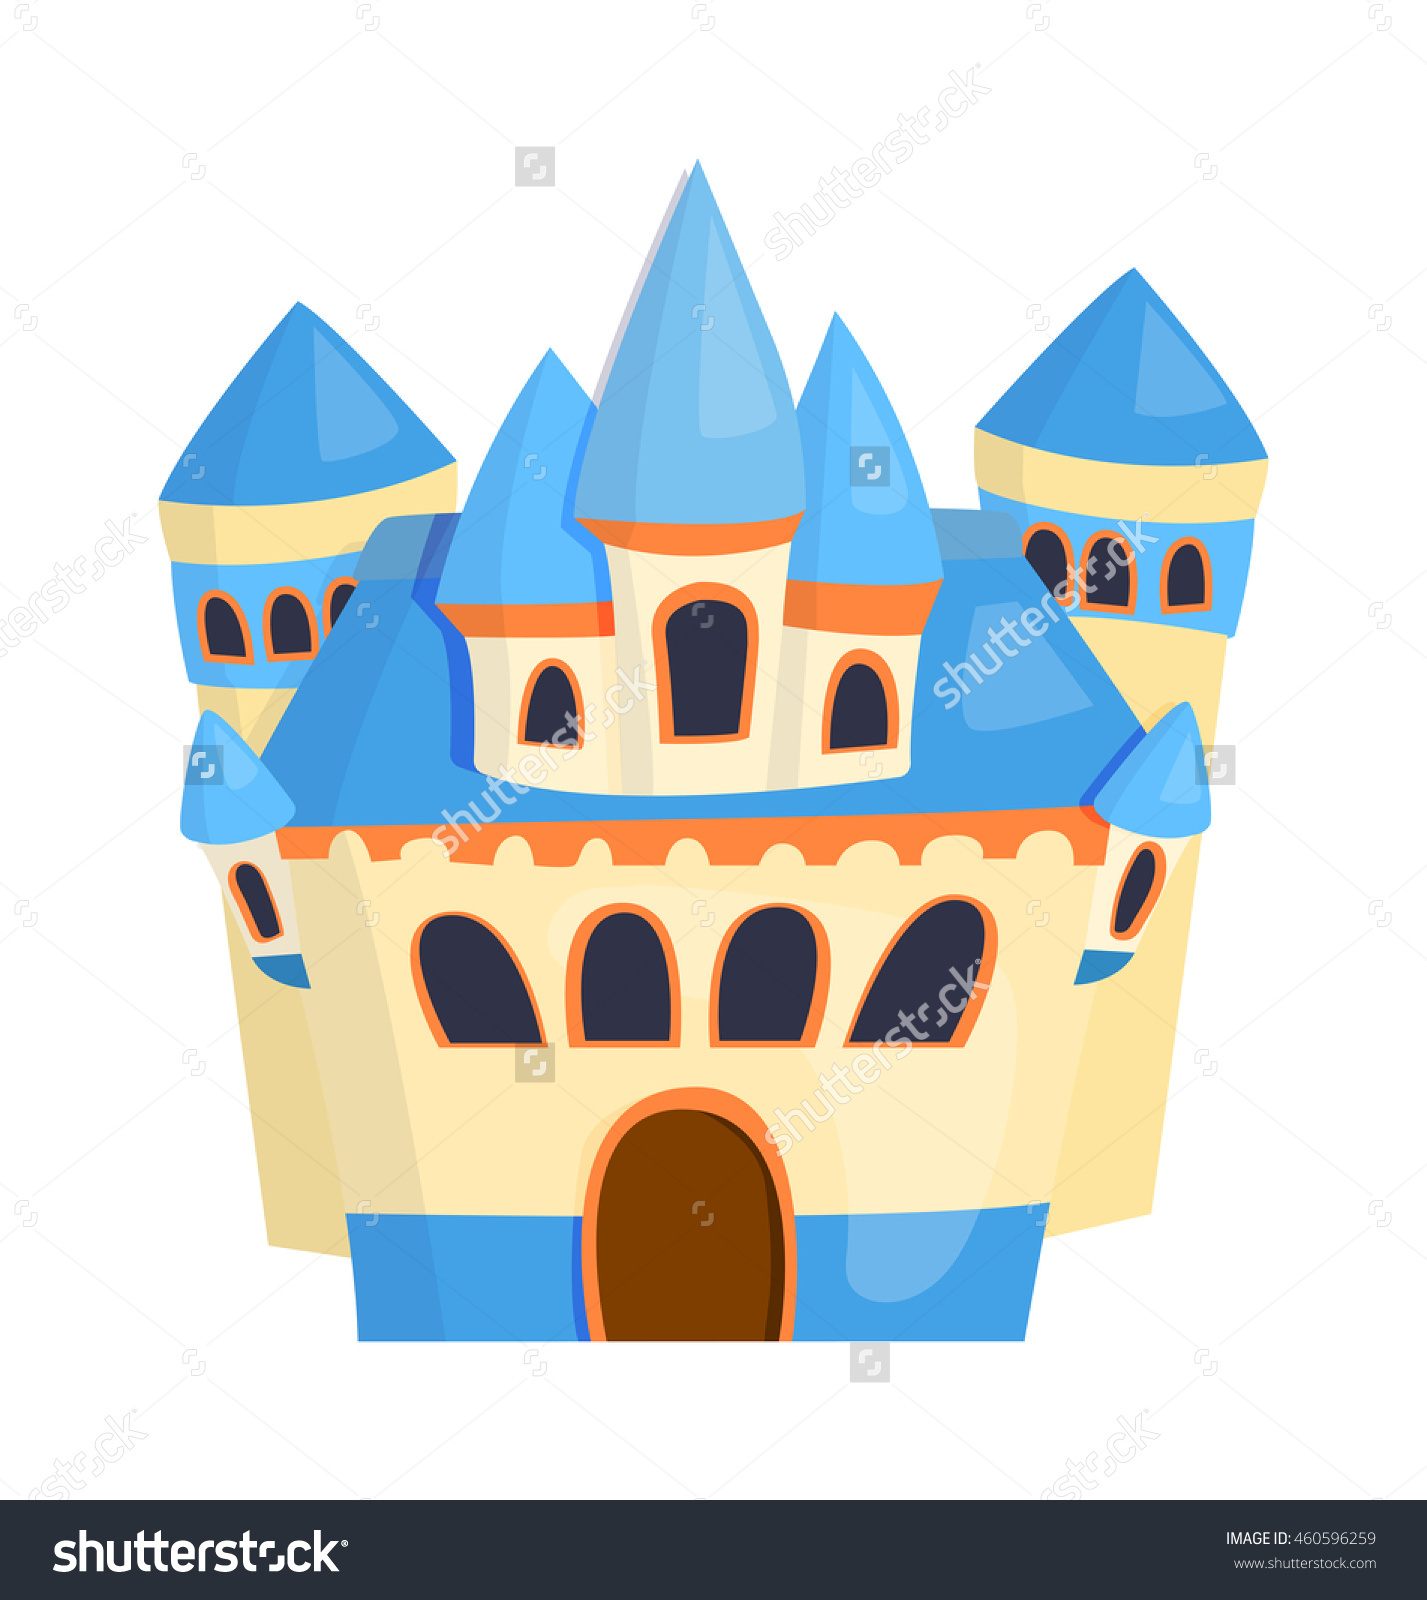 Cartoon Fairy Tale Castle Tower Icon Stock Vector 460596259.